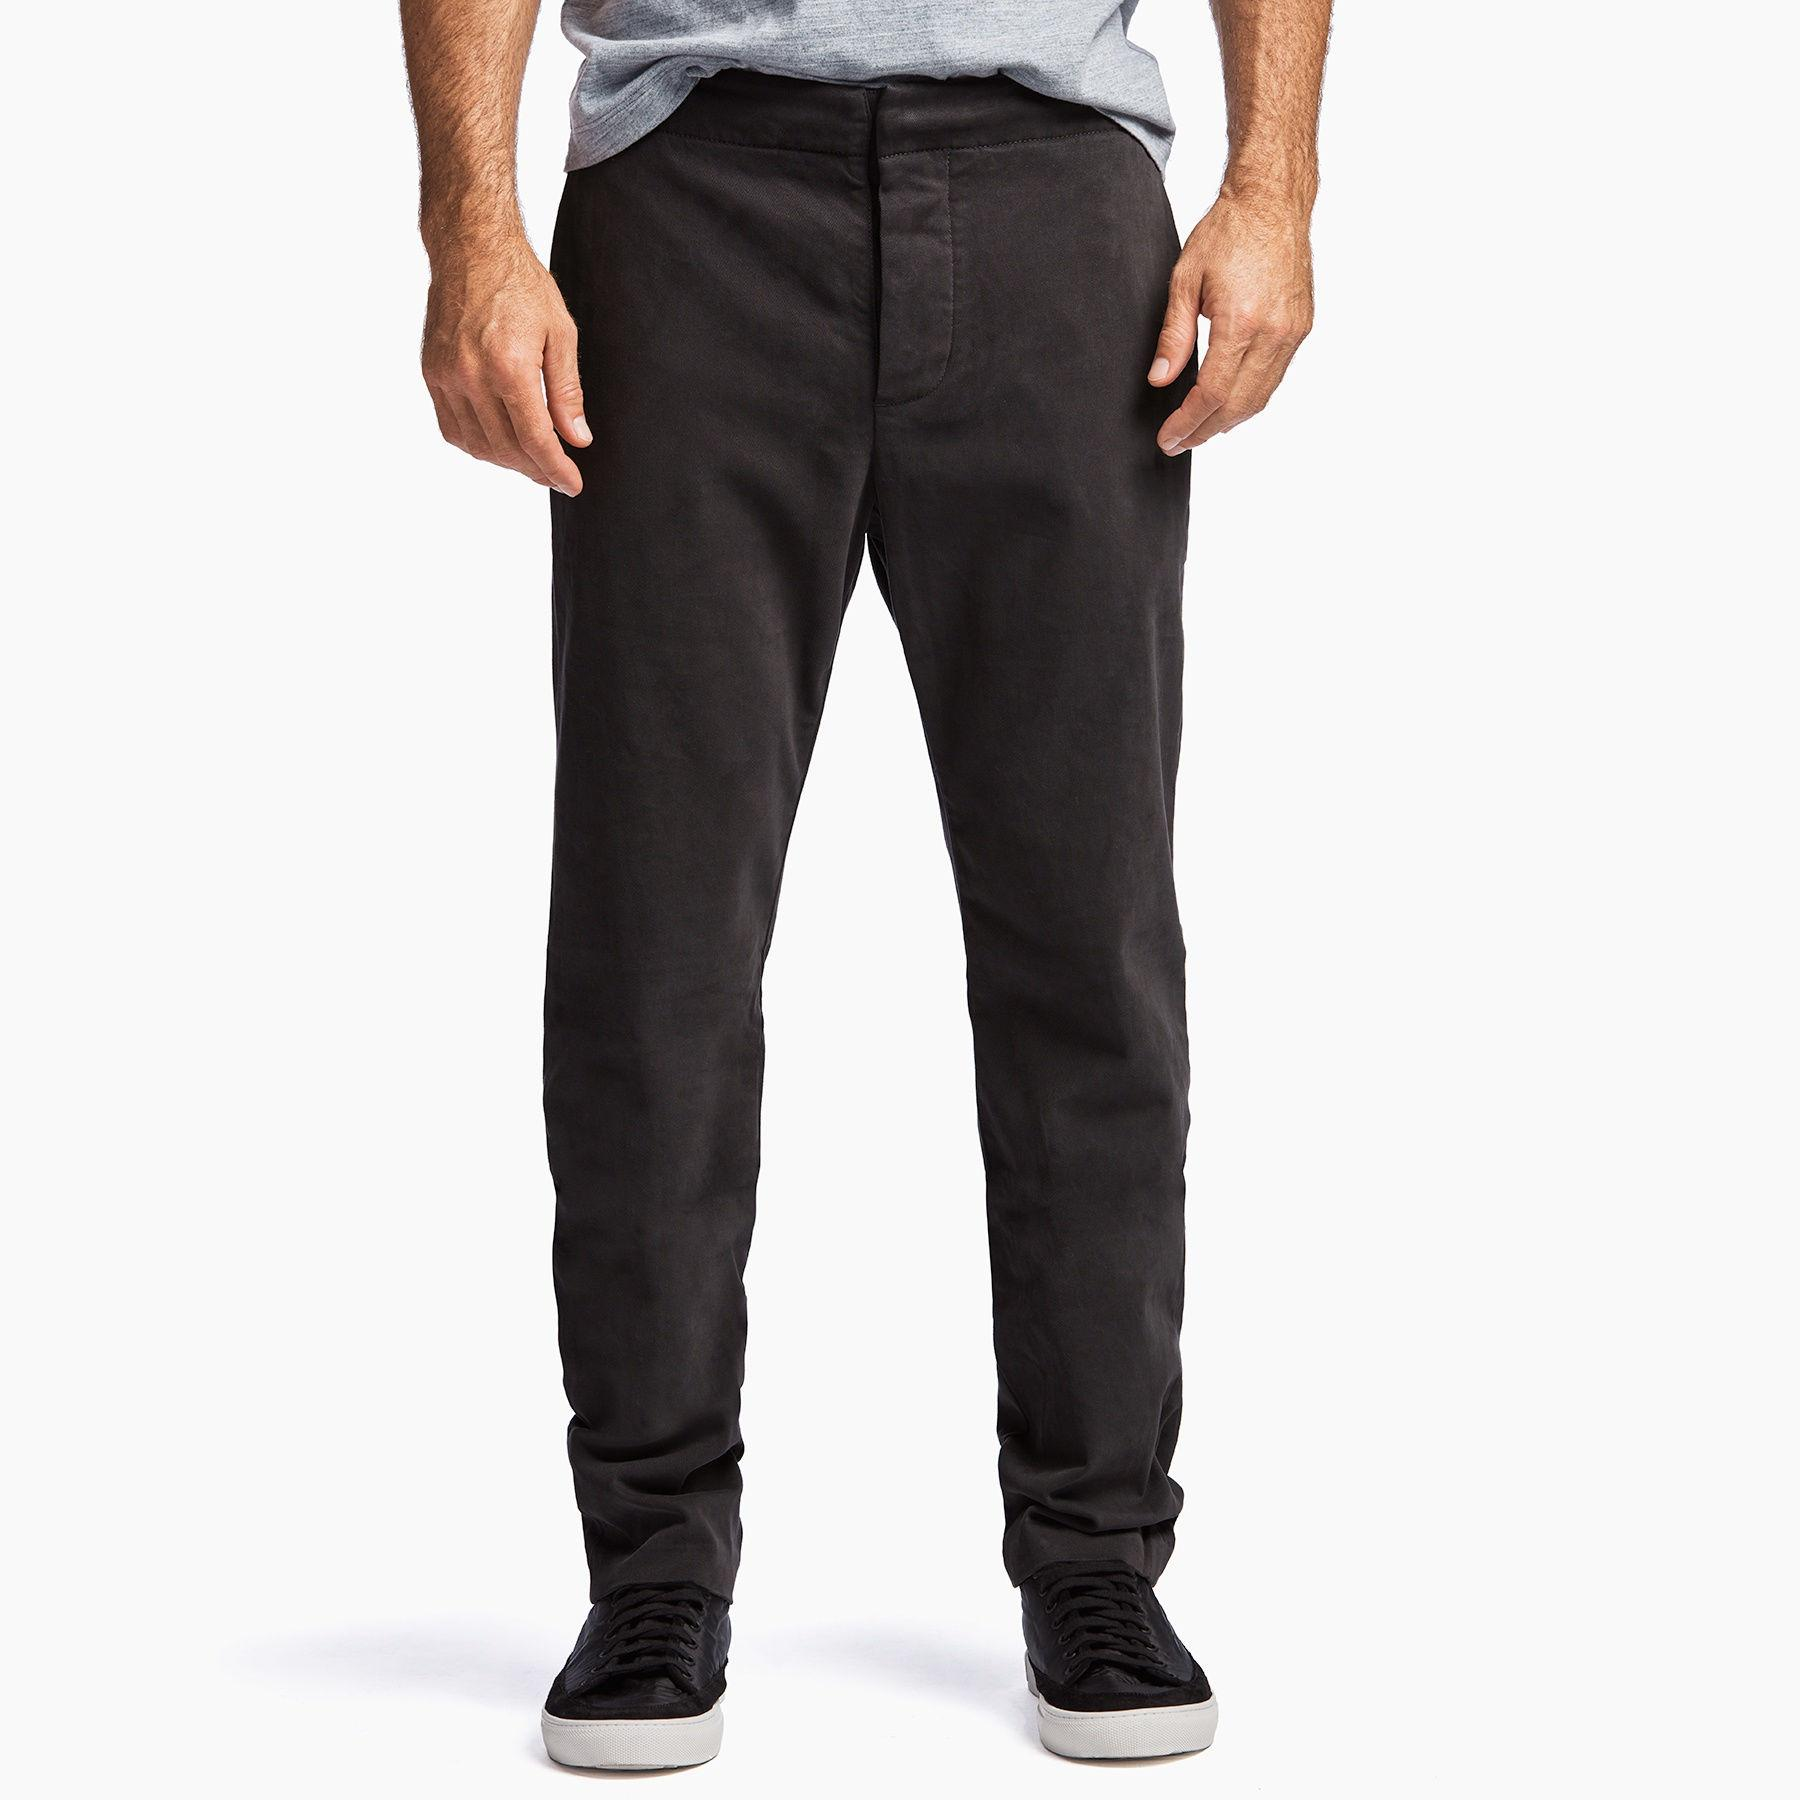 Slim-fit Brushed Stretch-cotton Twill Chinos James Perse Cheap Affordable Buy Cheap Cheap Cheap Wholesale Where Can You Find Buy Cheap New 6ynIBLI